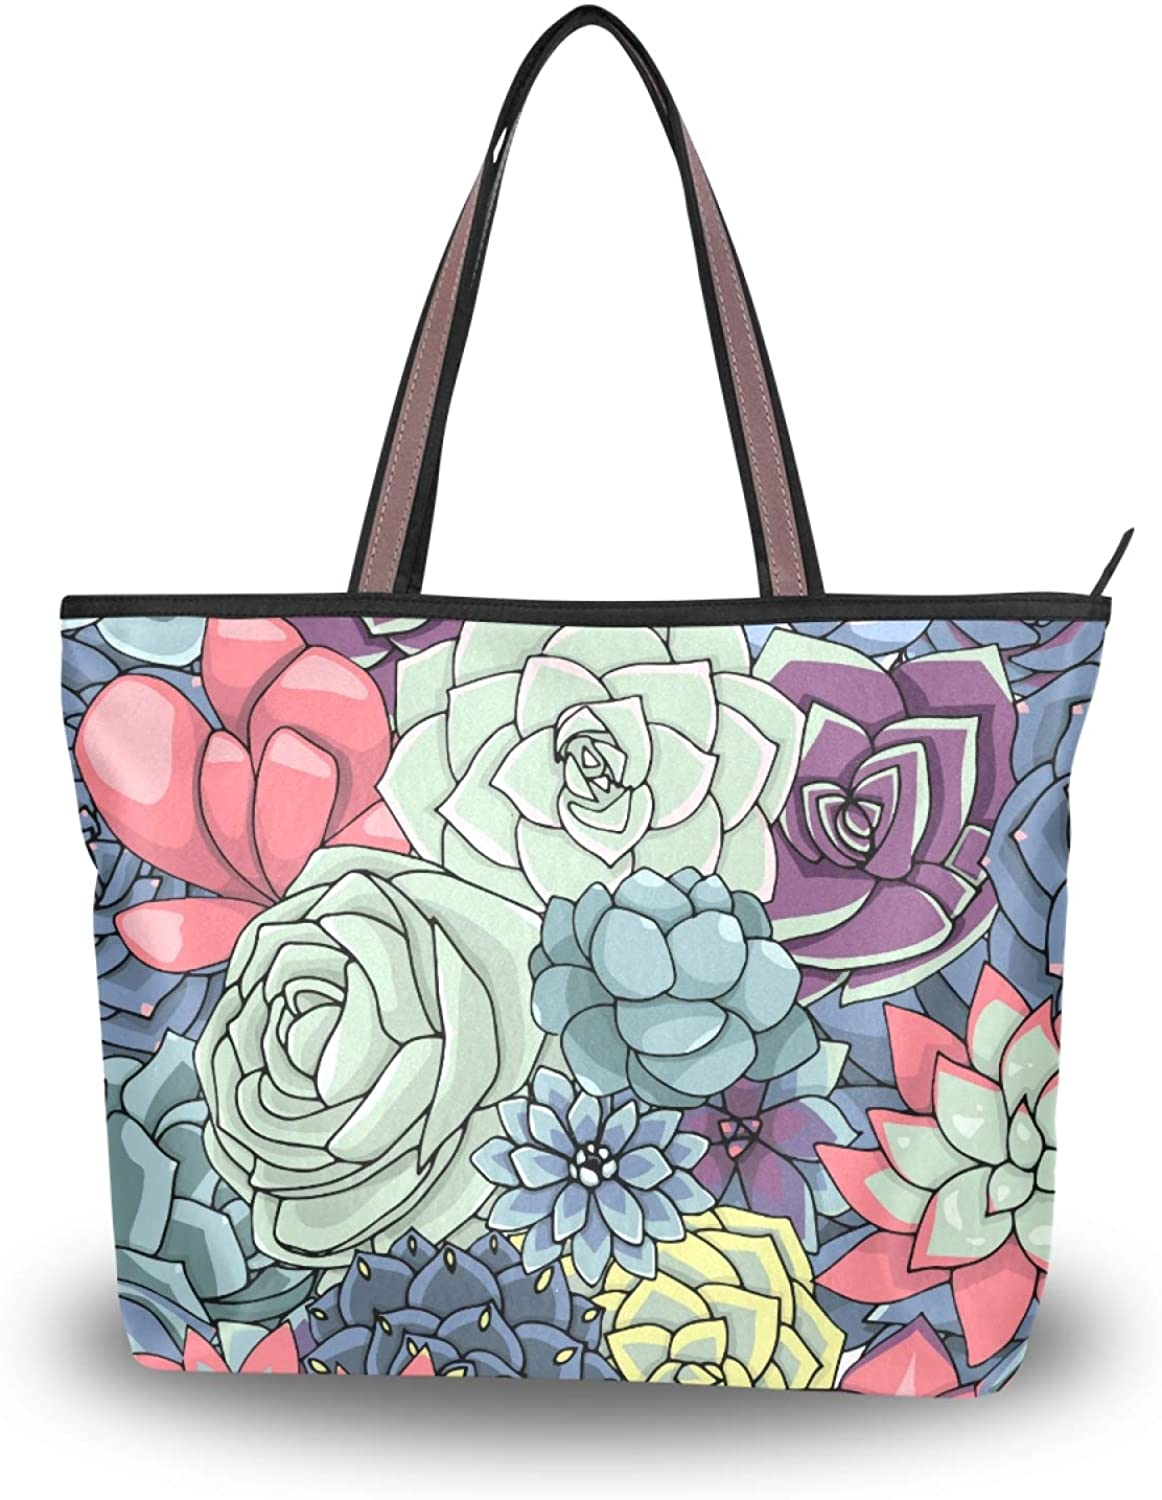 Women Large Tote Shoulder Handbag Colored Succulents And Cactus Floral Top Handle Shopping Bags for Ladies